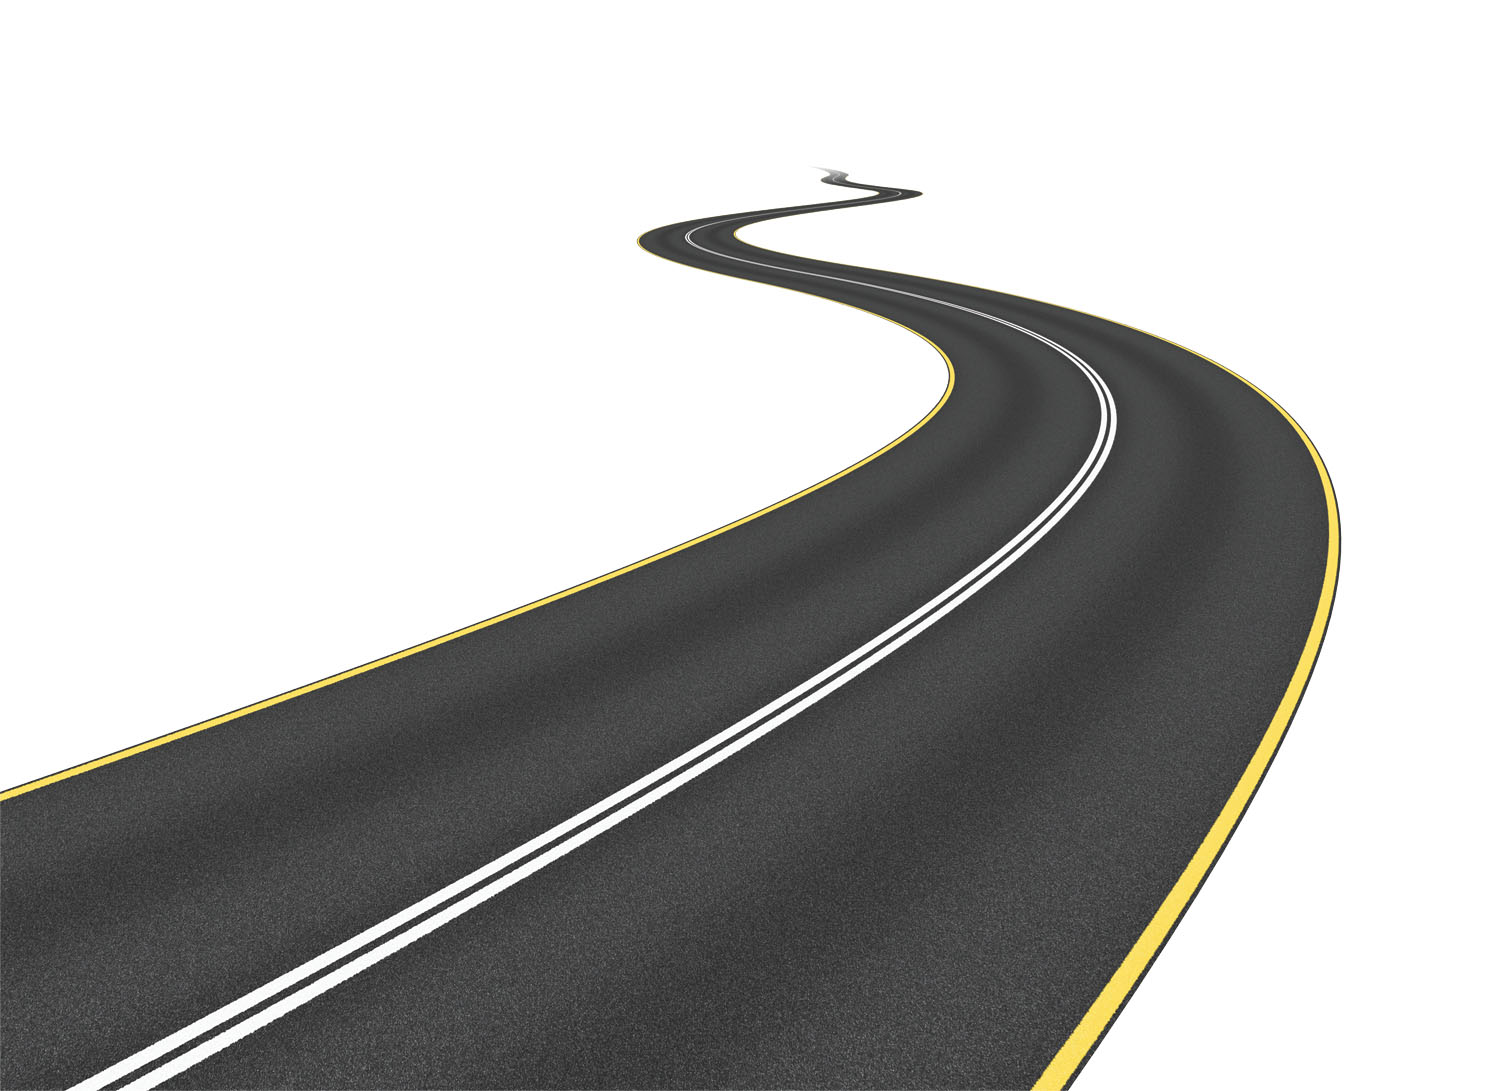 Drawn roadway vector Clipart Free Curvy Download on